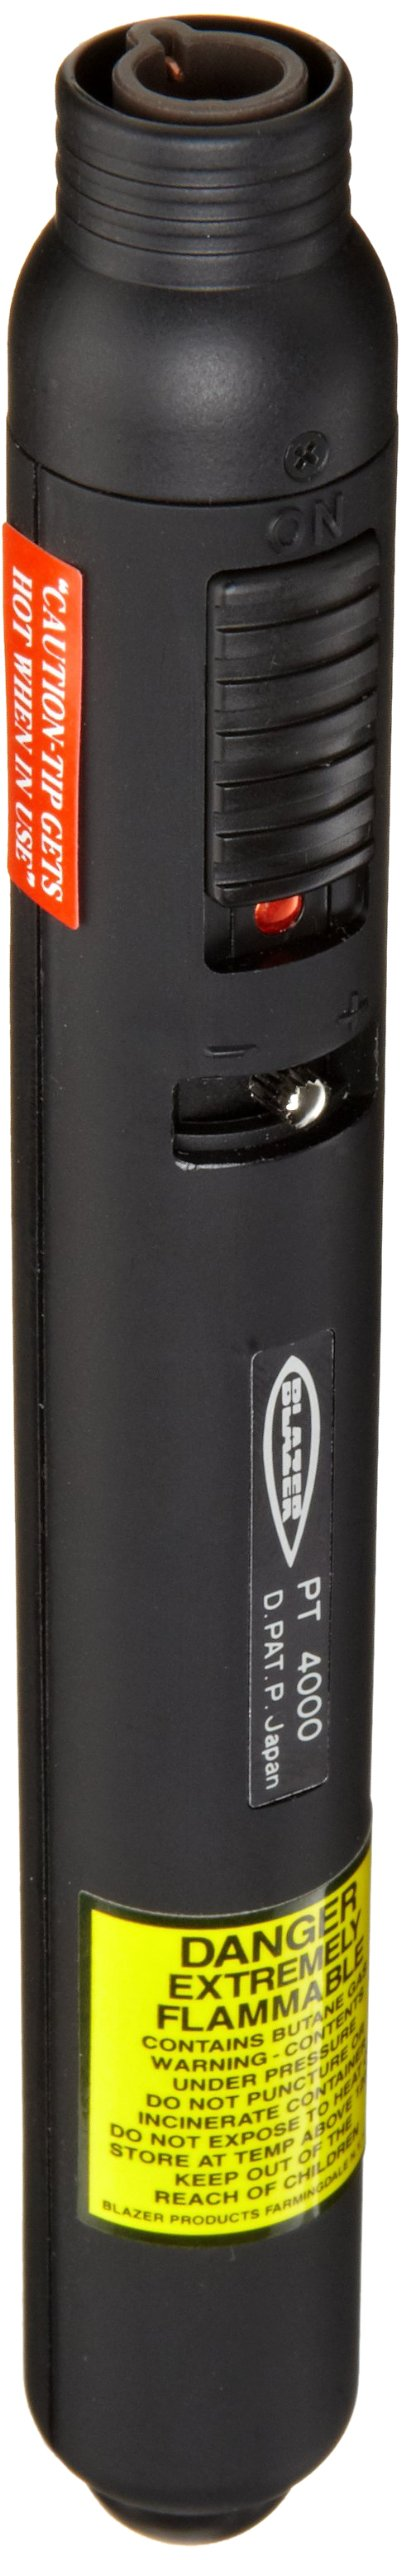 The PT4000 Pencil Torch operates with a standard butane canister (sold separately) by Blazer